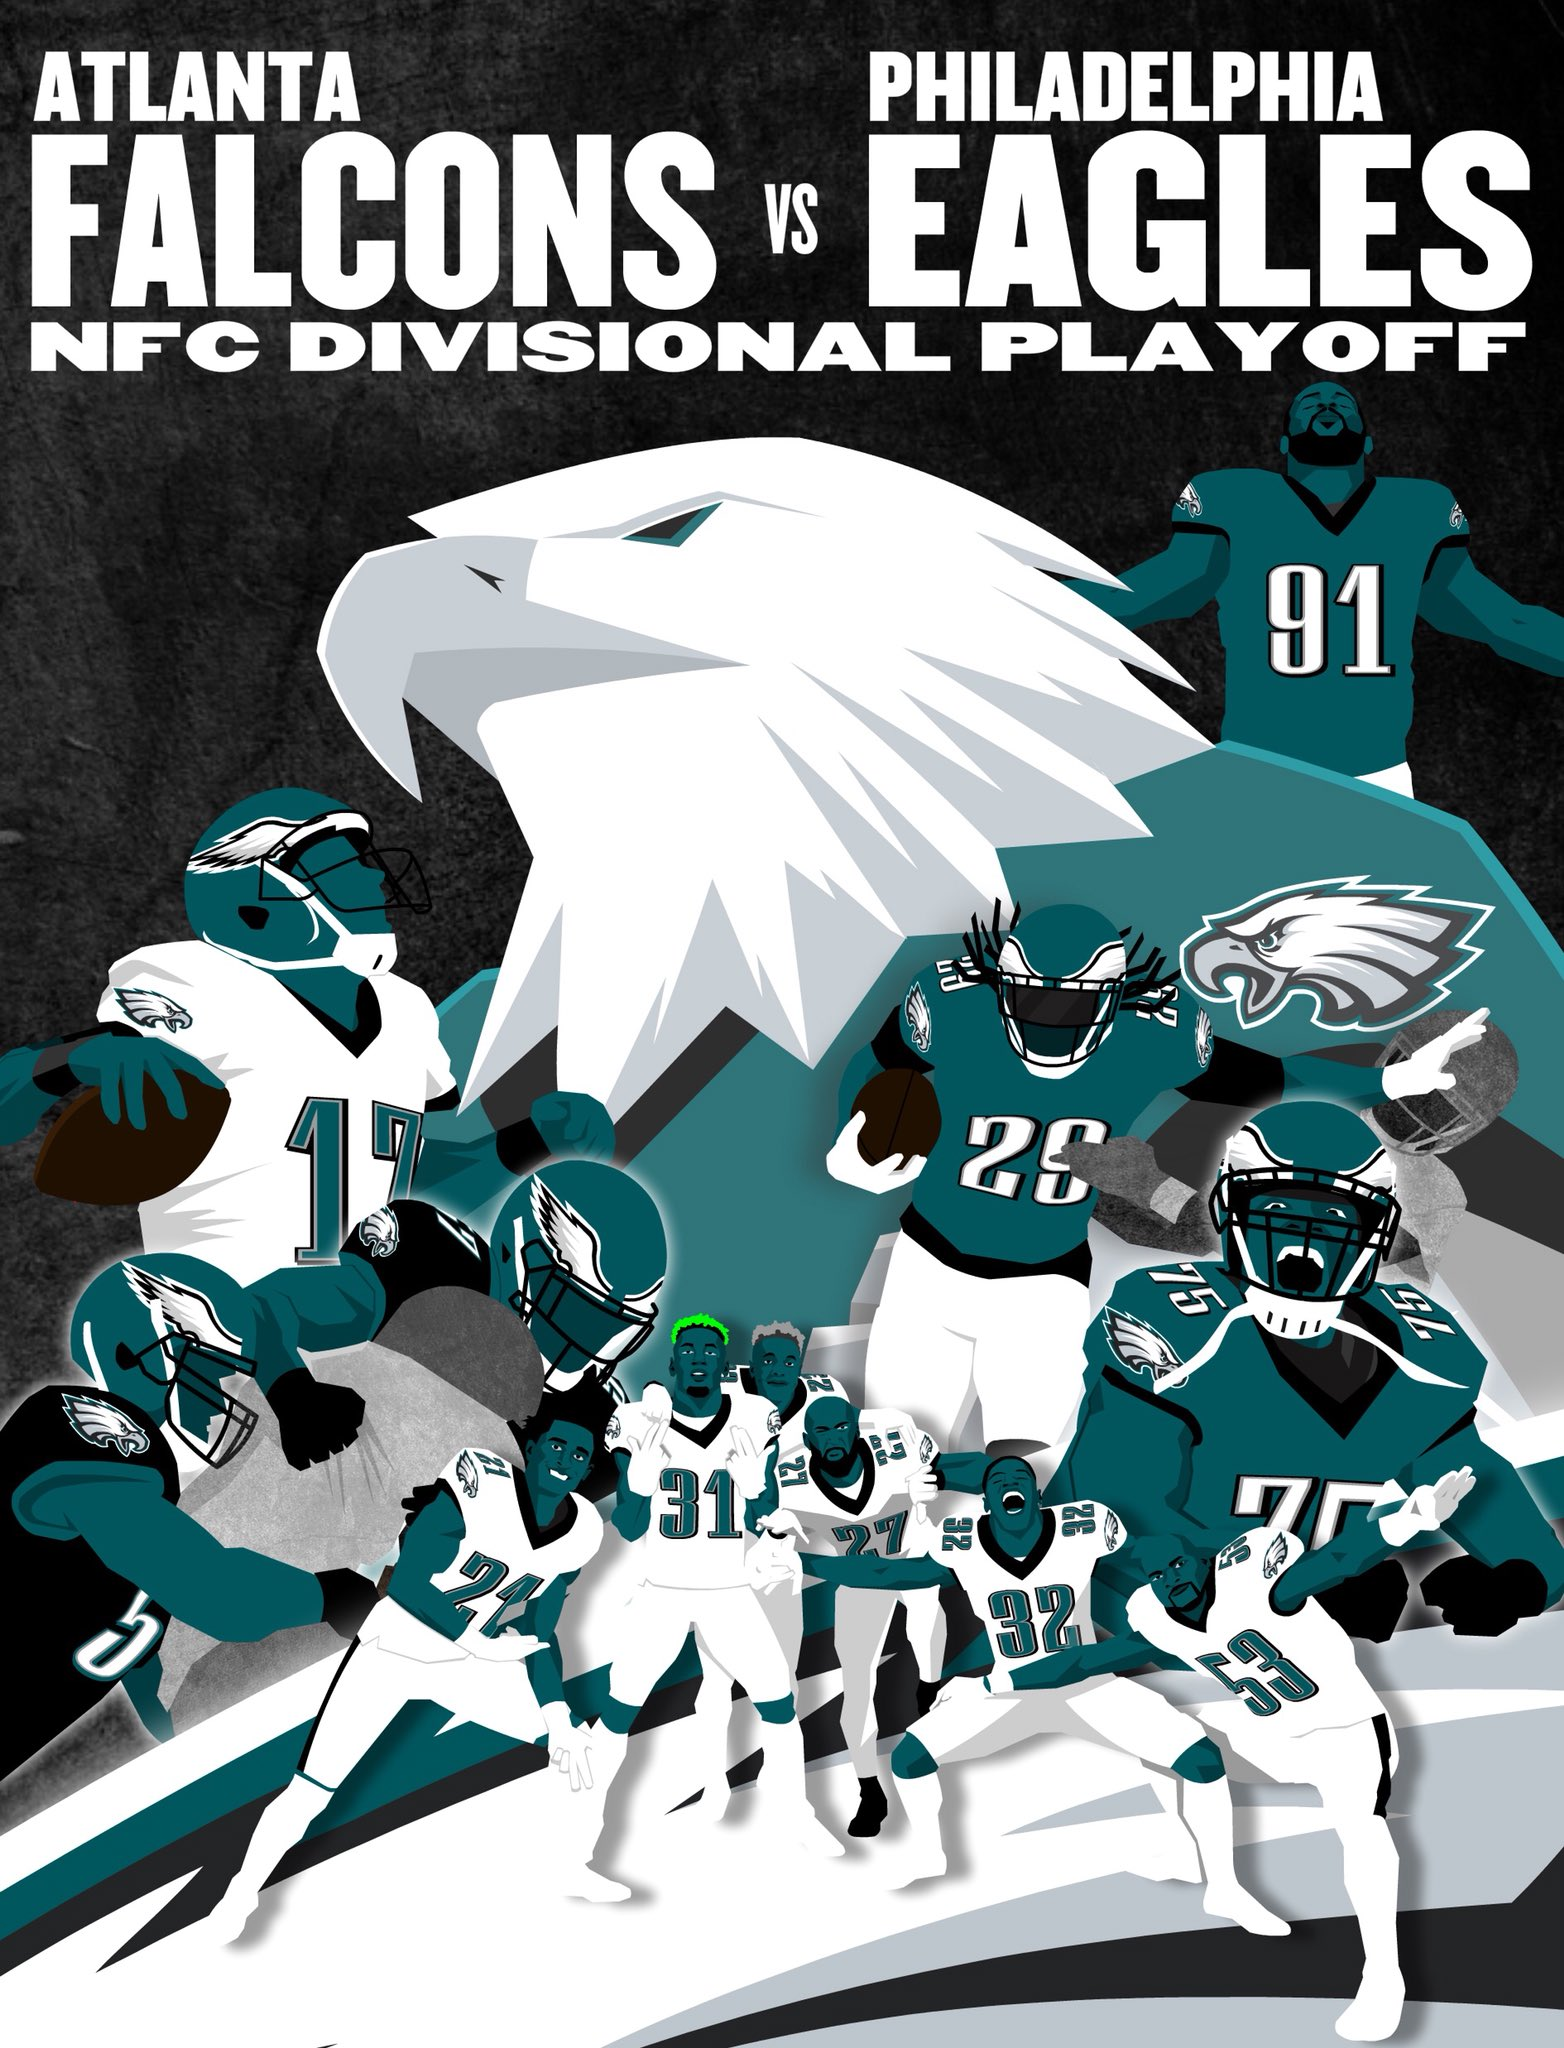 GAMEDAY  #ATLvsPHI | #FlyEaglesFly https://t.co/10yW2xMPhe